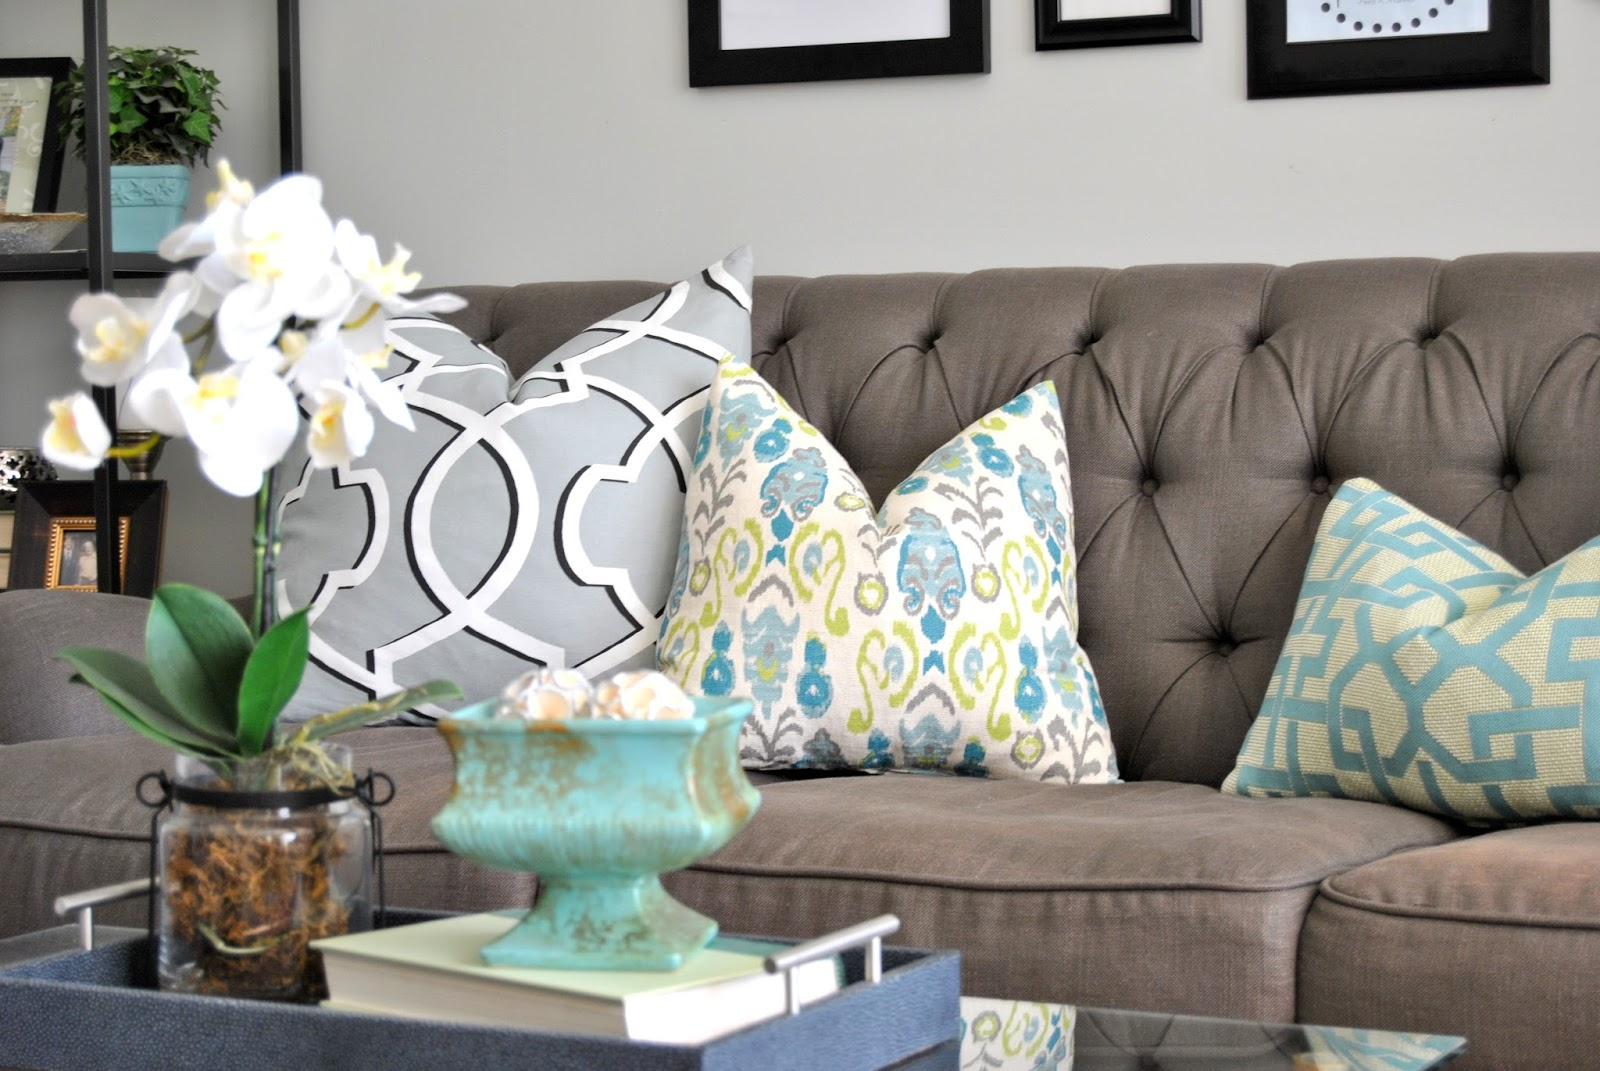 Studio 7 Interior Design: Instagram 10k Giveaway: The Bluebird Shop Pillow Cover